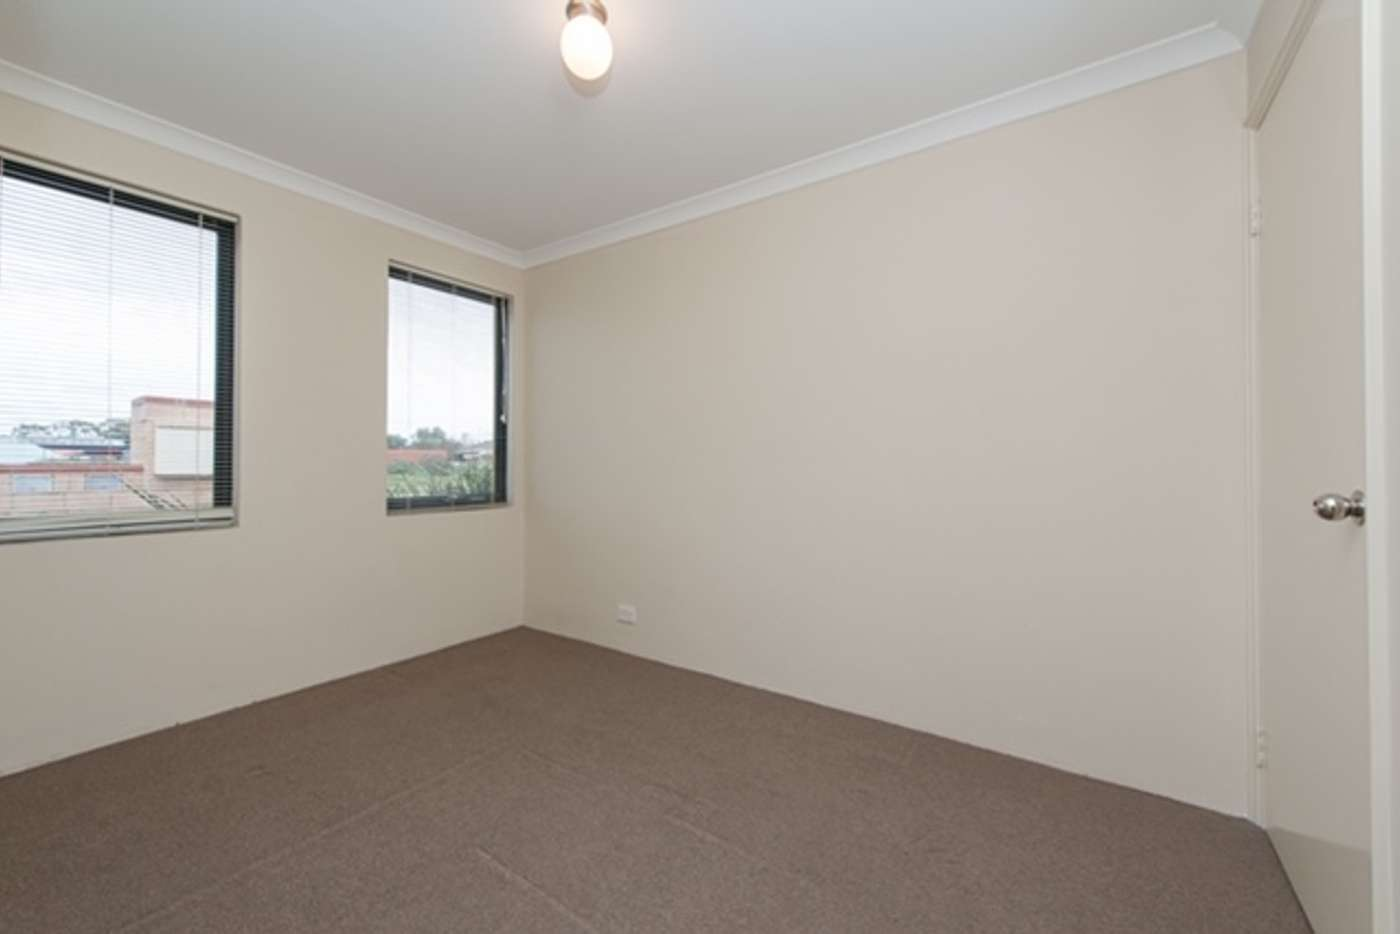 Seventh view of Homely villa listing, 7/3 Stoke Place, Morley WA 6062